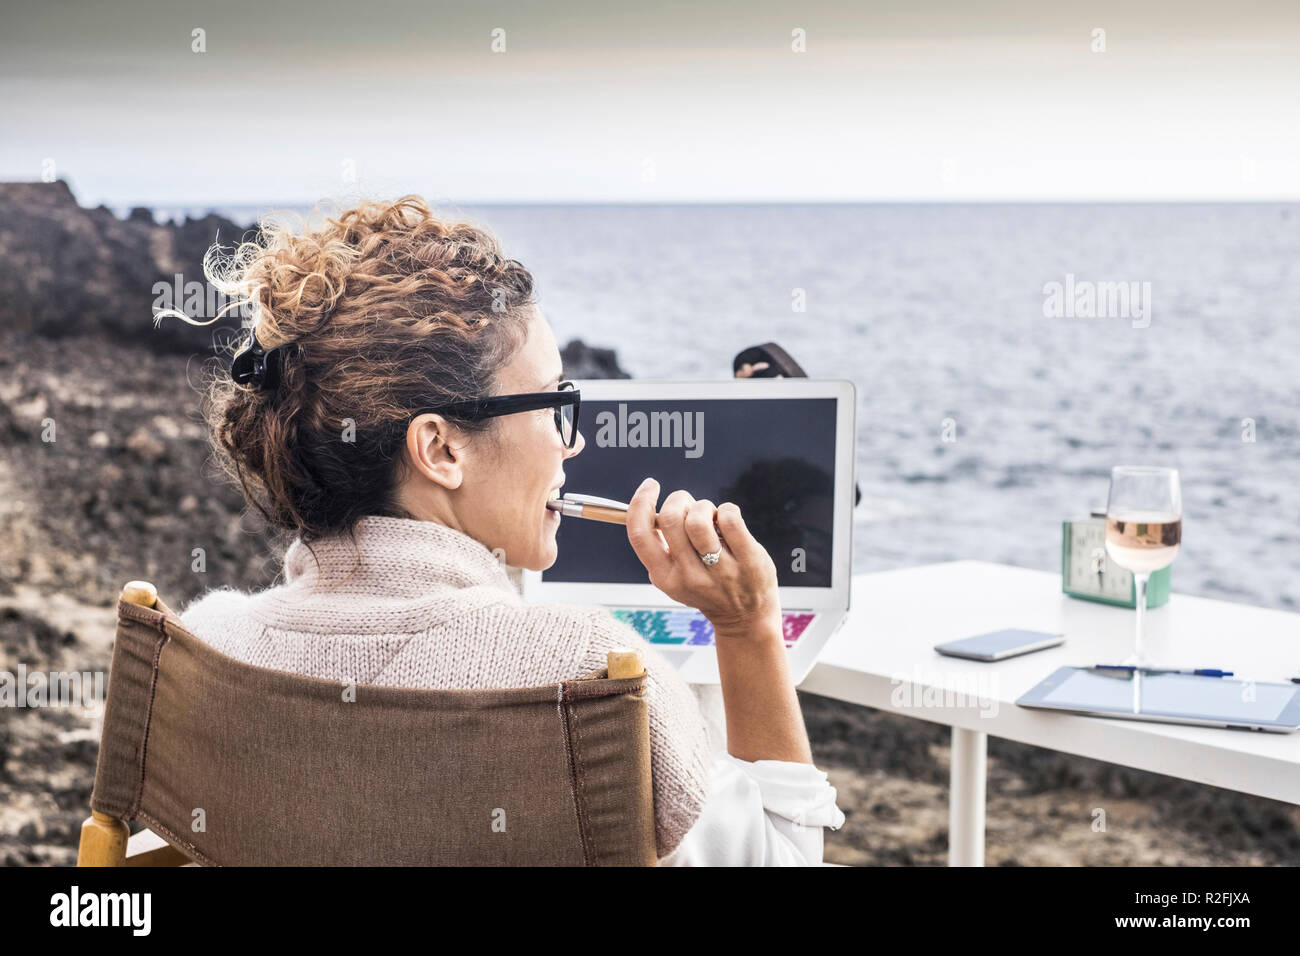 freedom and lifestyle for young woman at work in front of the ocean with no rooms and offices. laptop open and lady thinking at his career and his life. enjoying freedom and alternative work concept - Stock Image